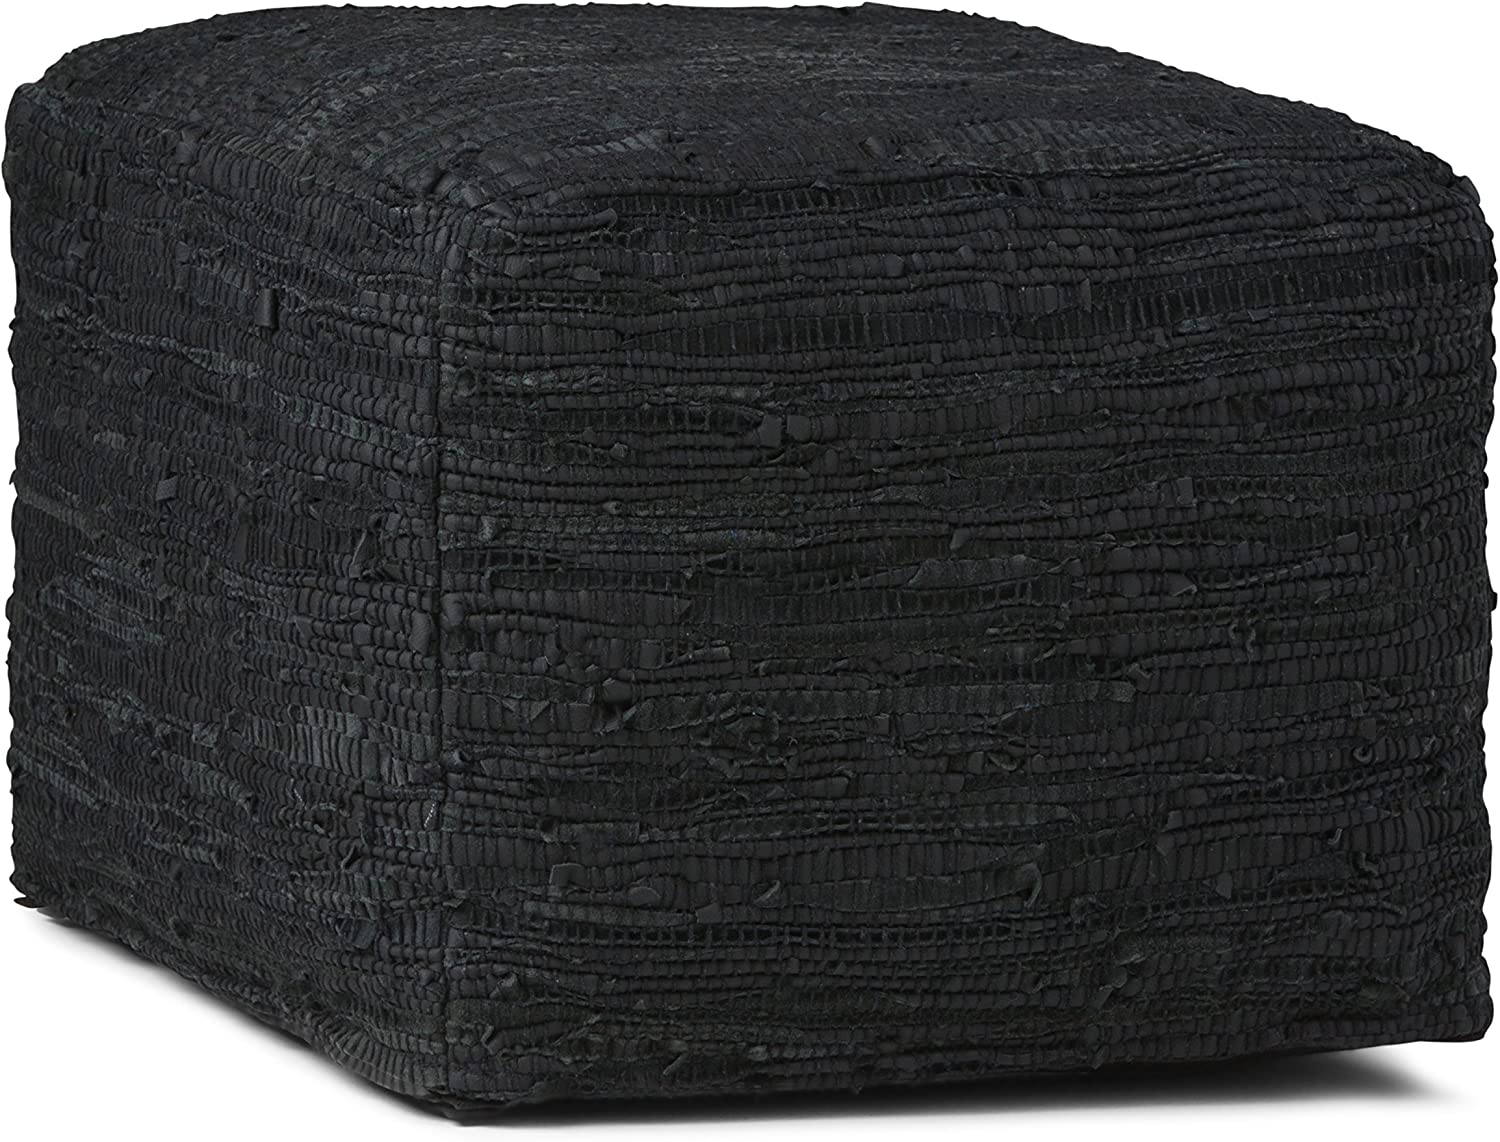 SIMPLIHOME Fredrik Square Pouf, Footstool, Upholstered in Black Woven Leather, for the Living Room, Bedroom and Kids Room, Transitional, Modern